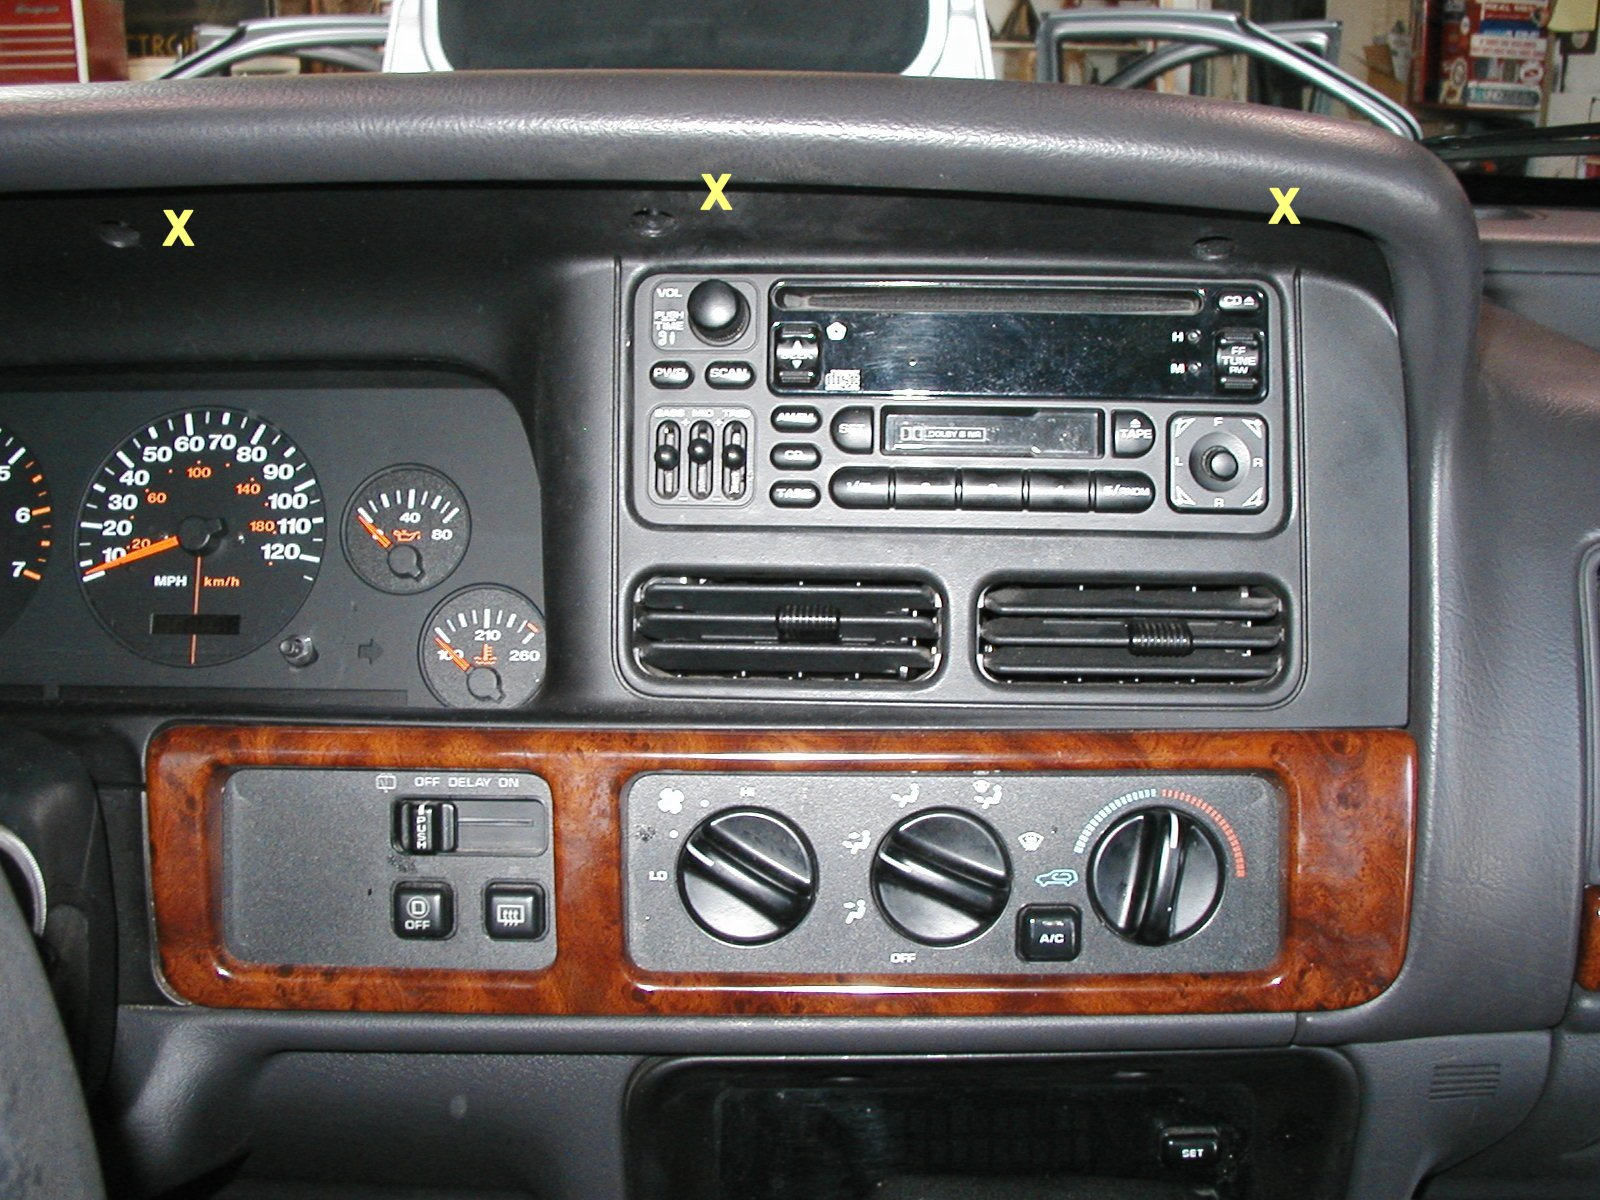 1996 Jeep Cherokee Installation Parts Harness Wires Kits Wiring For Car Audio Dash With Factory Radio